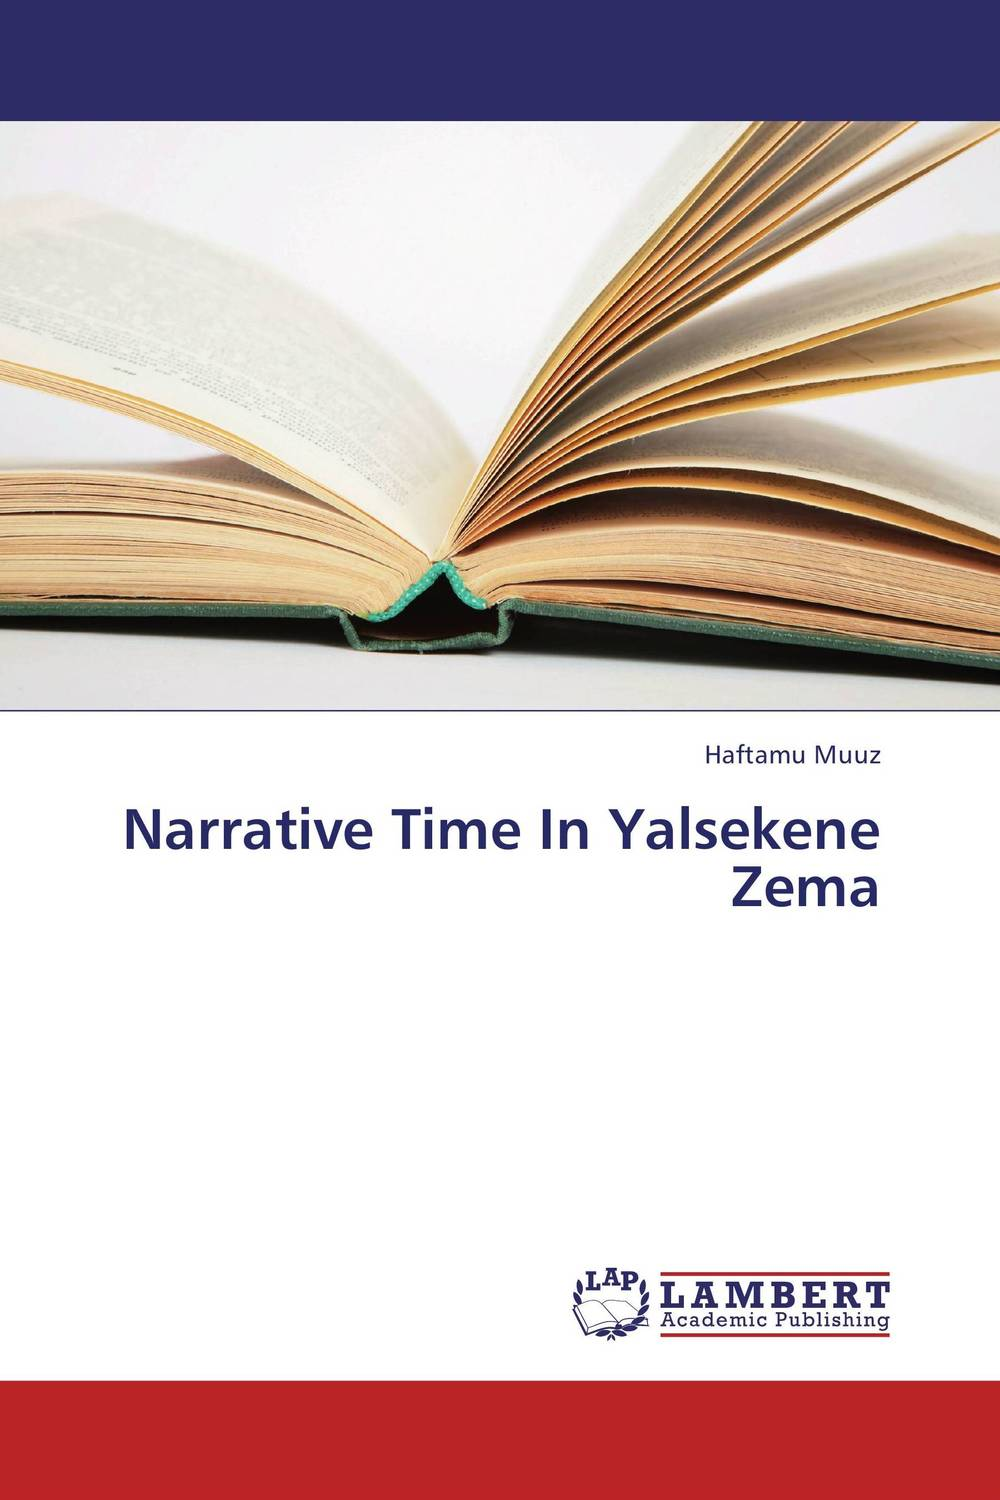 Narrative Time In Yalsekene Zema